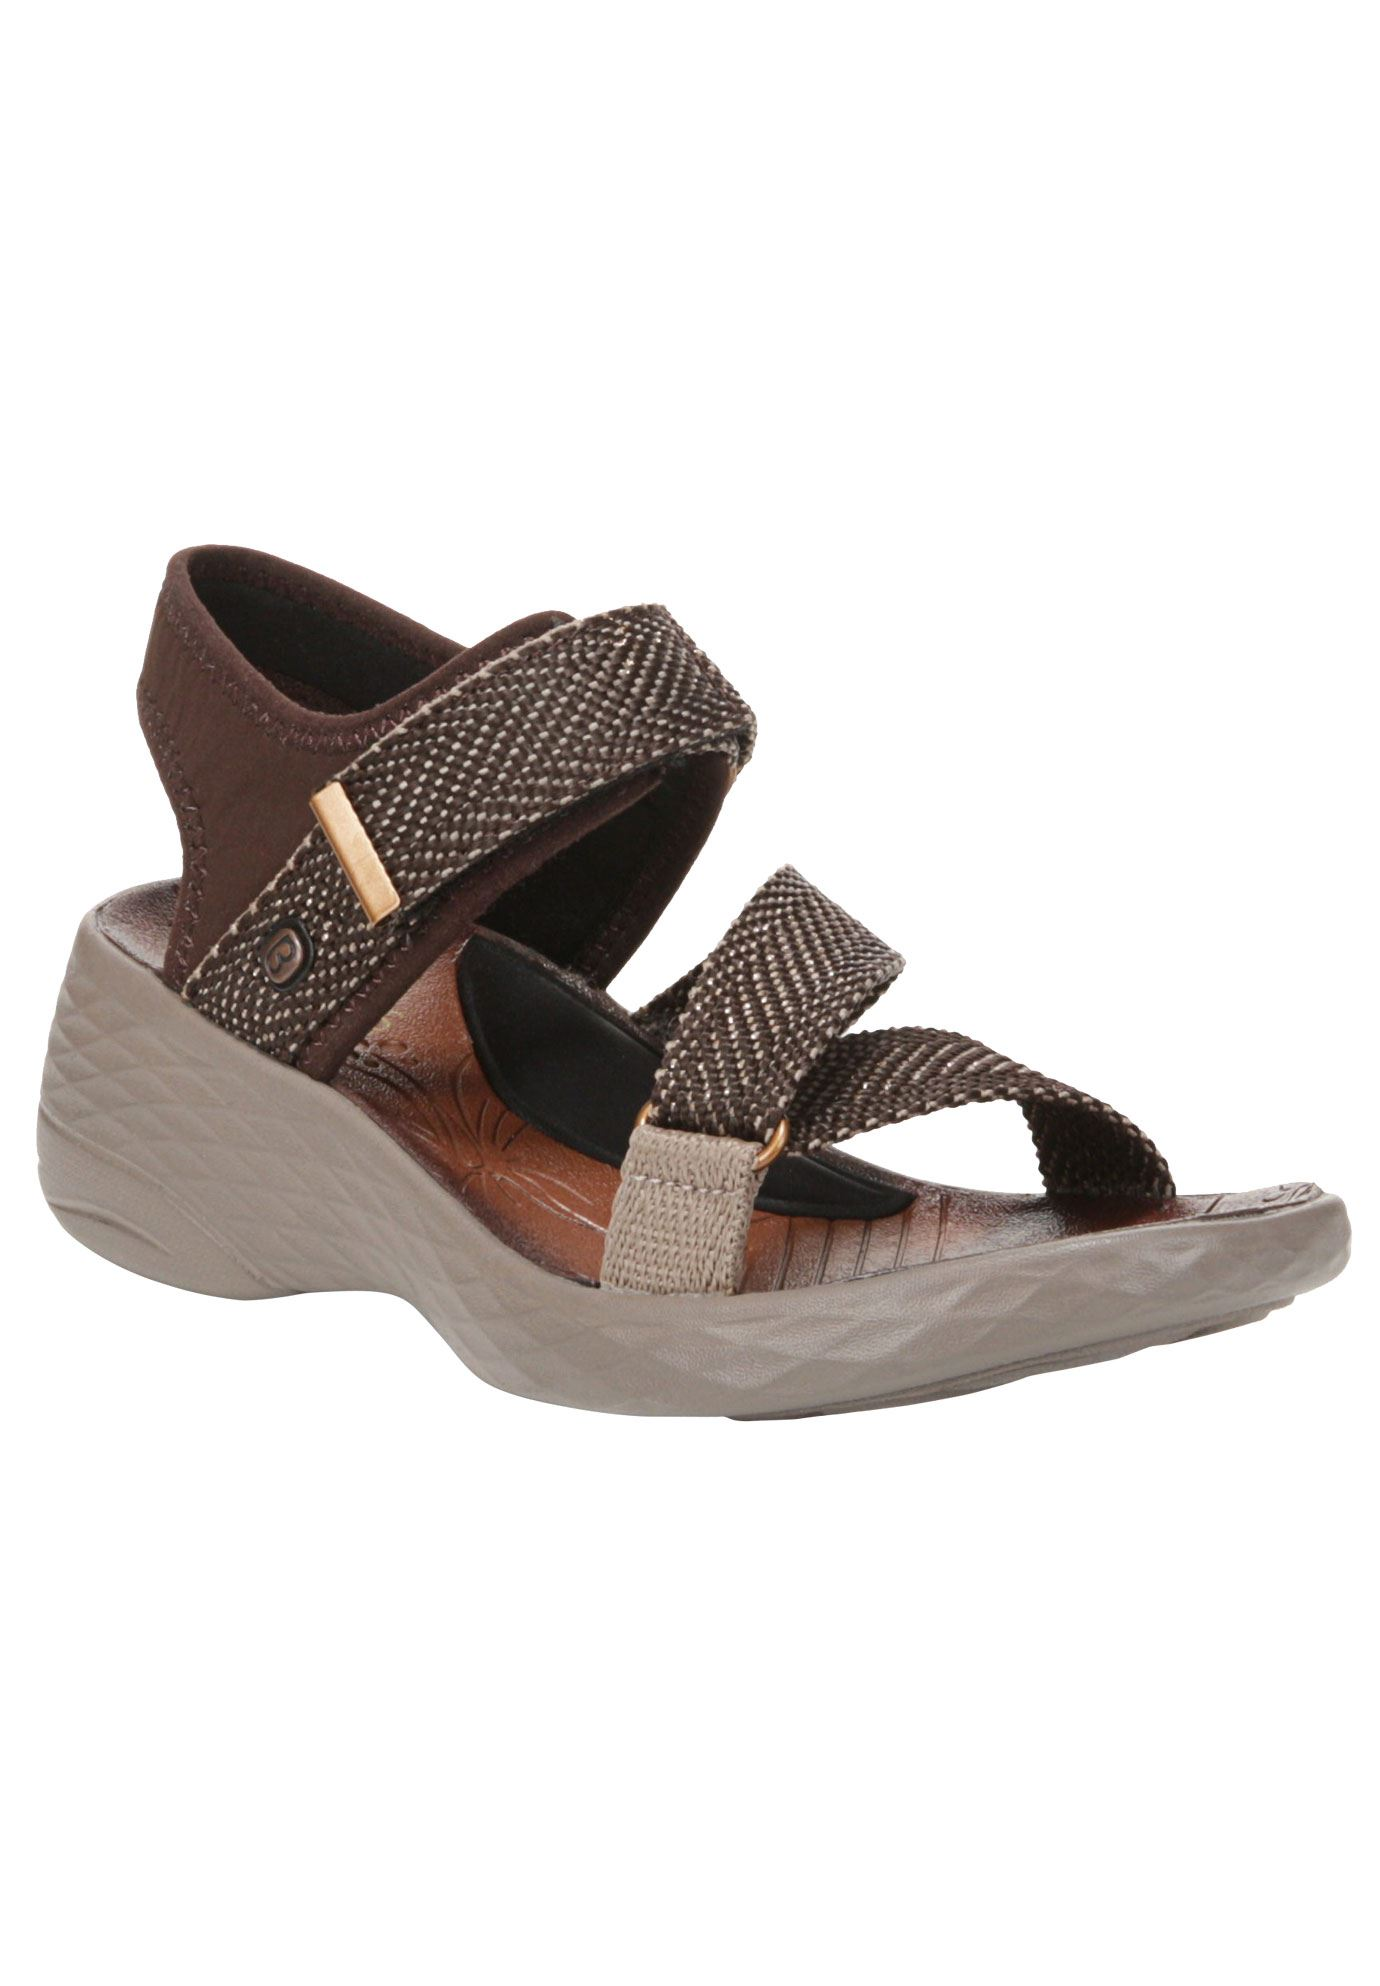 Jive Sandals by BZees Wide Width Women's (With images